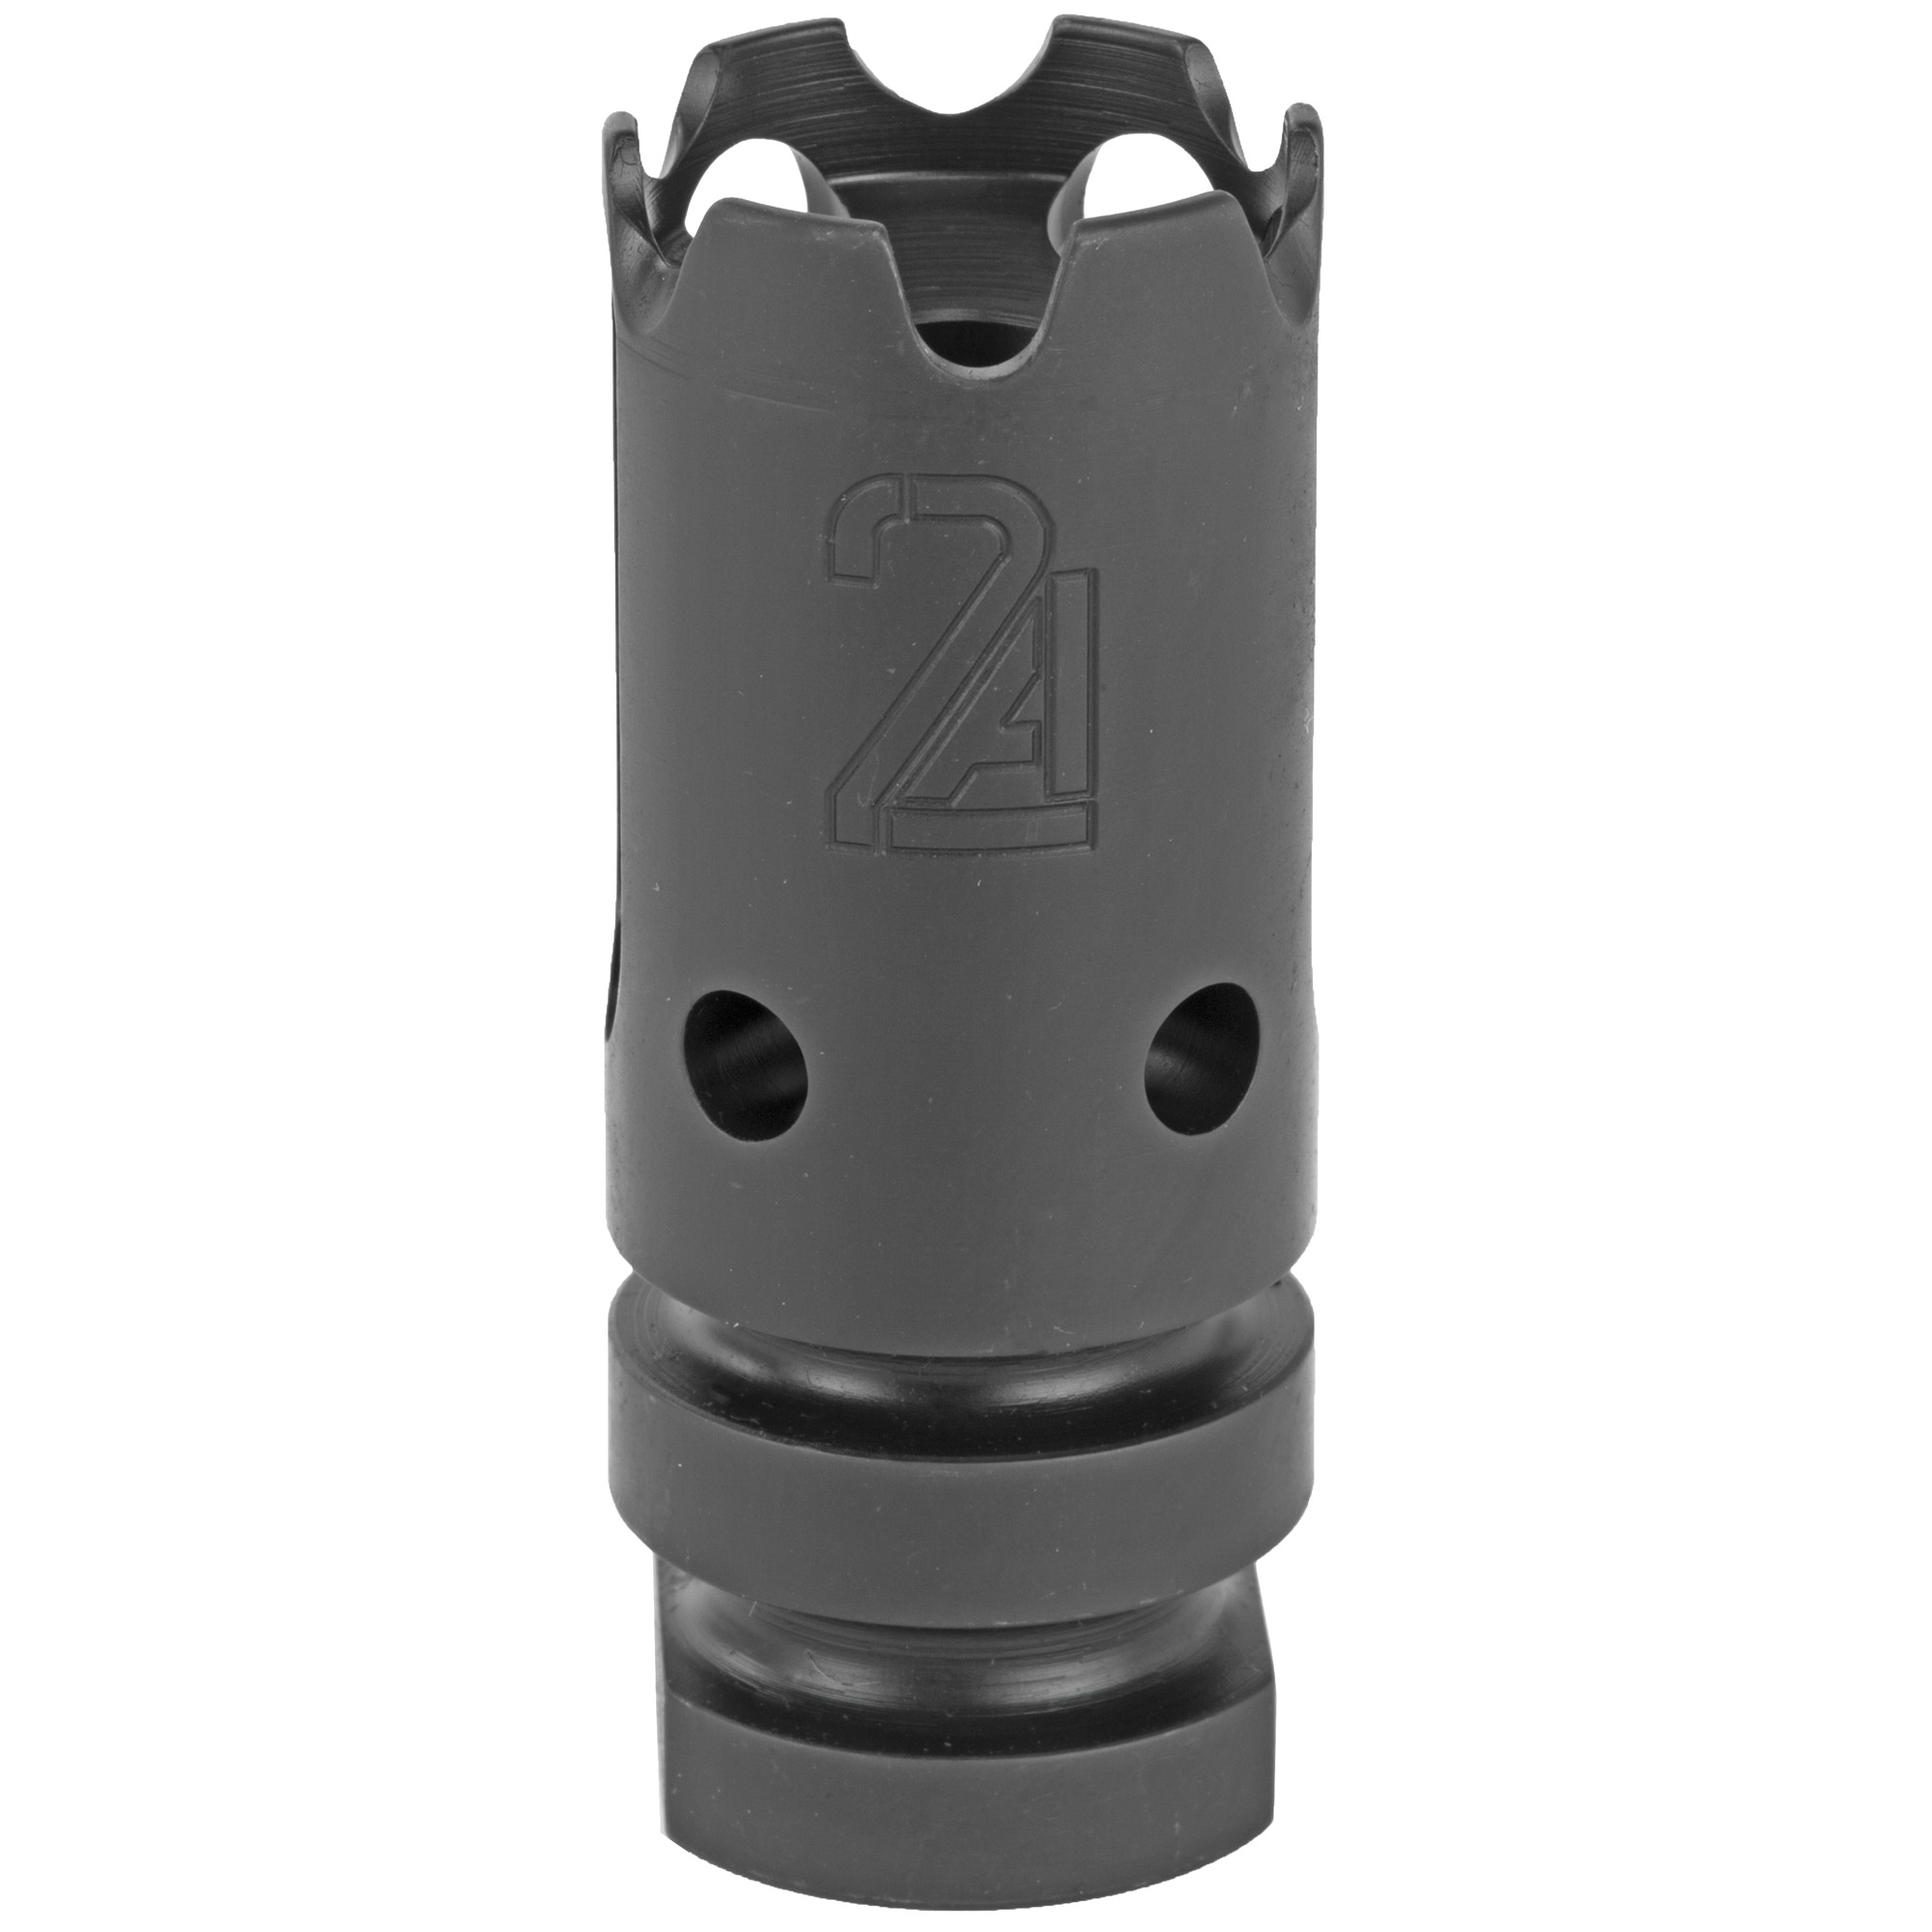 The development of the T3 compensator started with the need for a muzzle device that not only maintains a small size but also performs well within its intended use. The T3 is a dual baffle compensator that directs expelled gasses to control muzzle direction. The initial baffle directs gas in a geometrical pattern that stabilizes the rifle system. The second baffle system channels gasses upward to compensate for muzzle rise. This gives the shooter the ability to decrease the time between follow up shots and maintain control of muzzle direction. The T3 is a mounting solution for suppressors that mount via an A2 style flash hider.